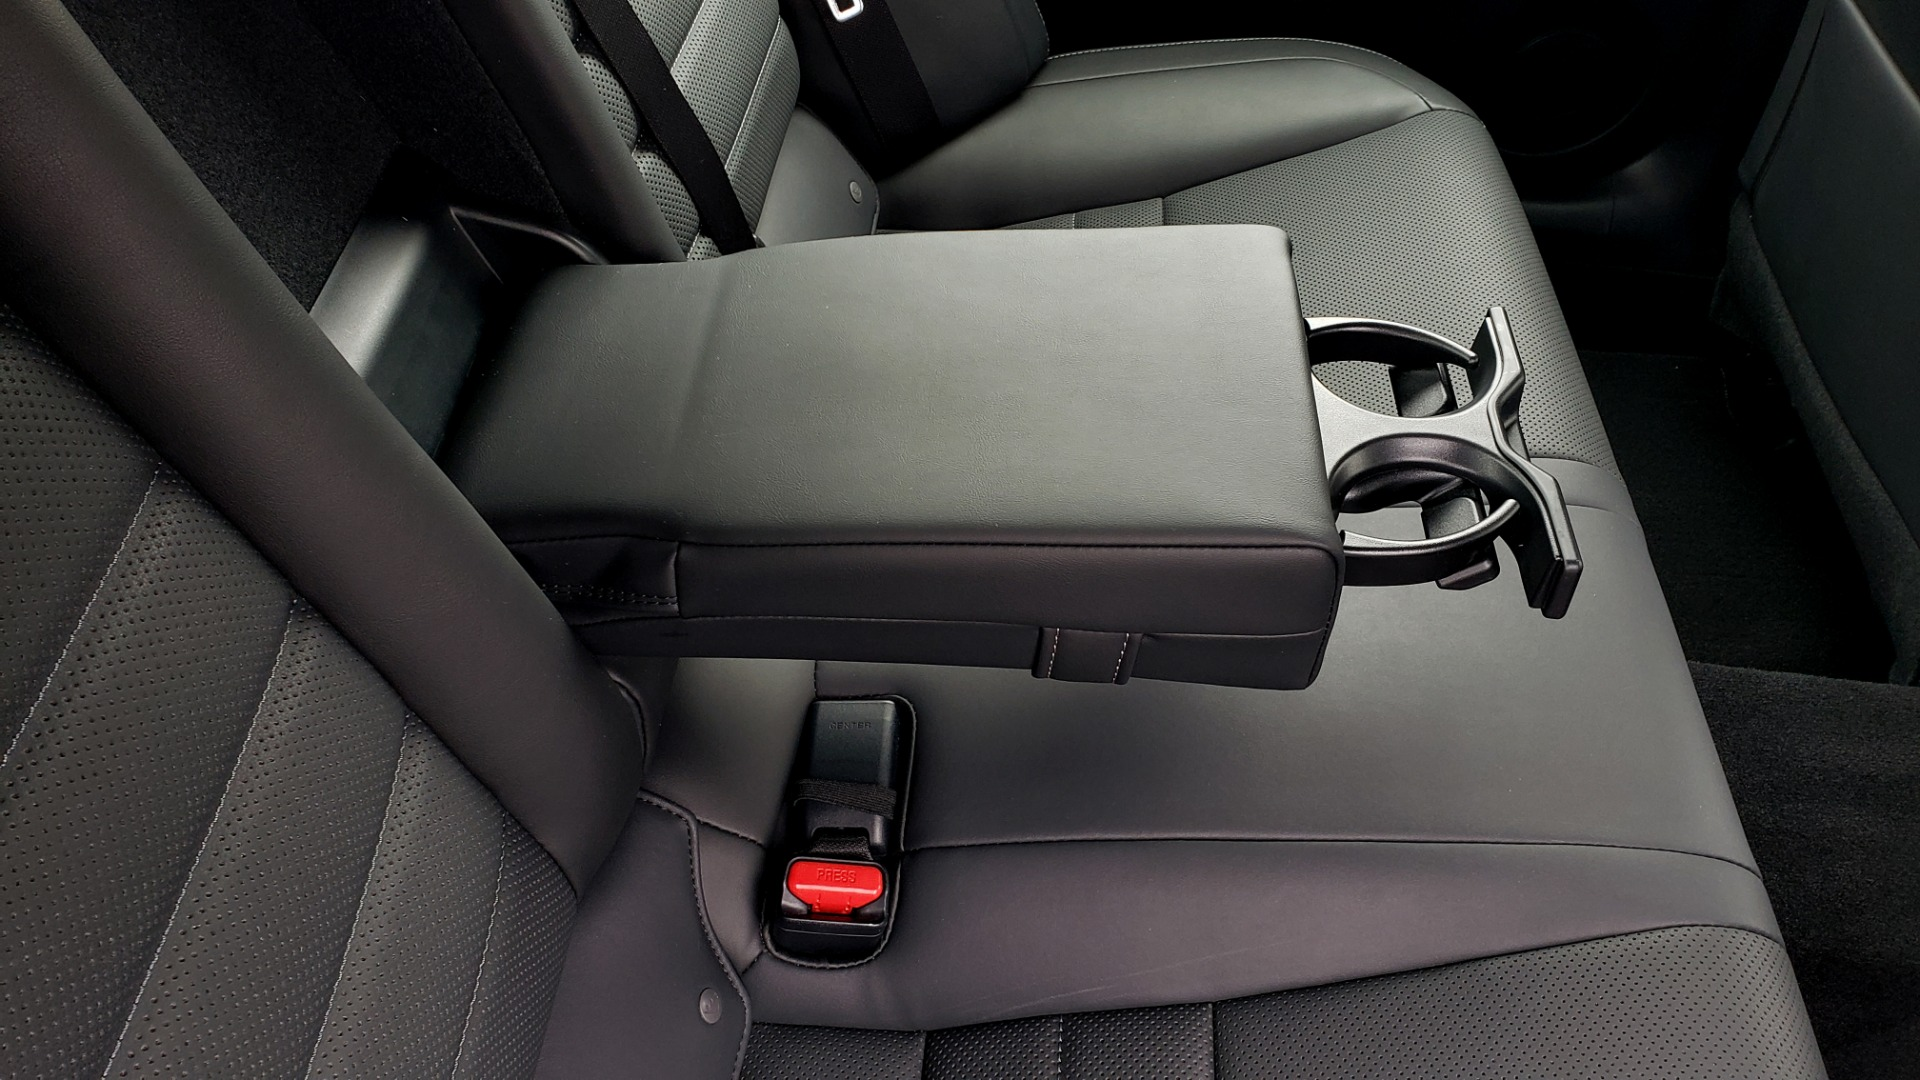 Used 2017 Lexus IS 200 TURBO F-SPORT / BSM / SUNROOF / VENT SEATS / REARVIEW for sale Sold at Formula Imports in Charlotte NC 28227 77